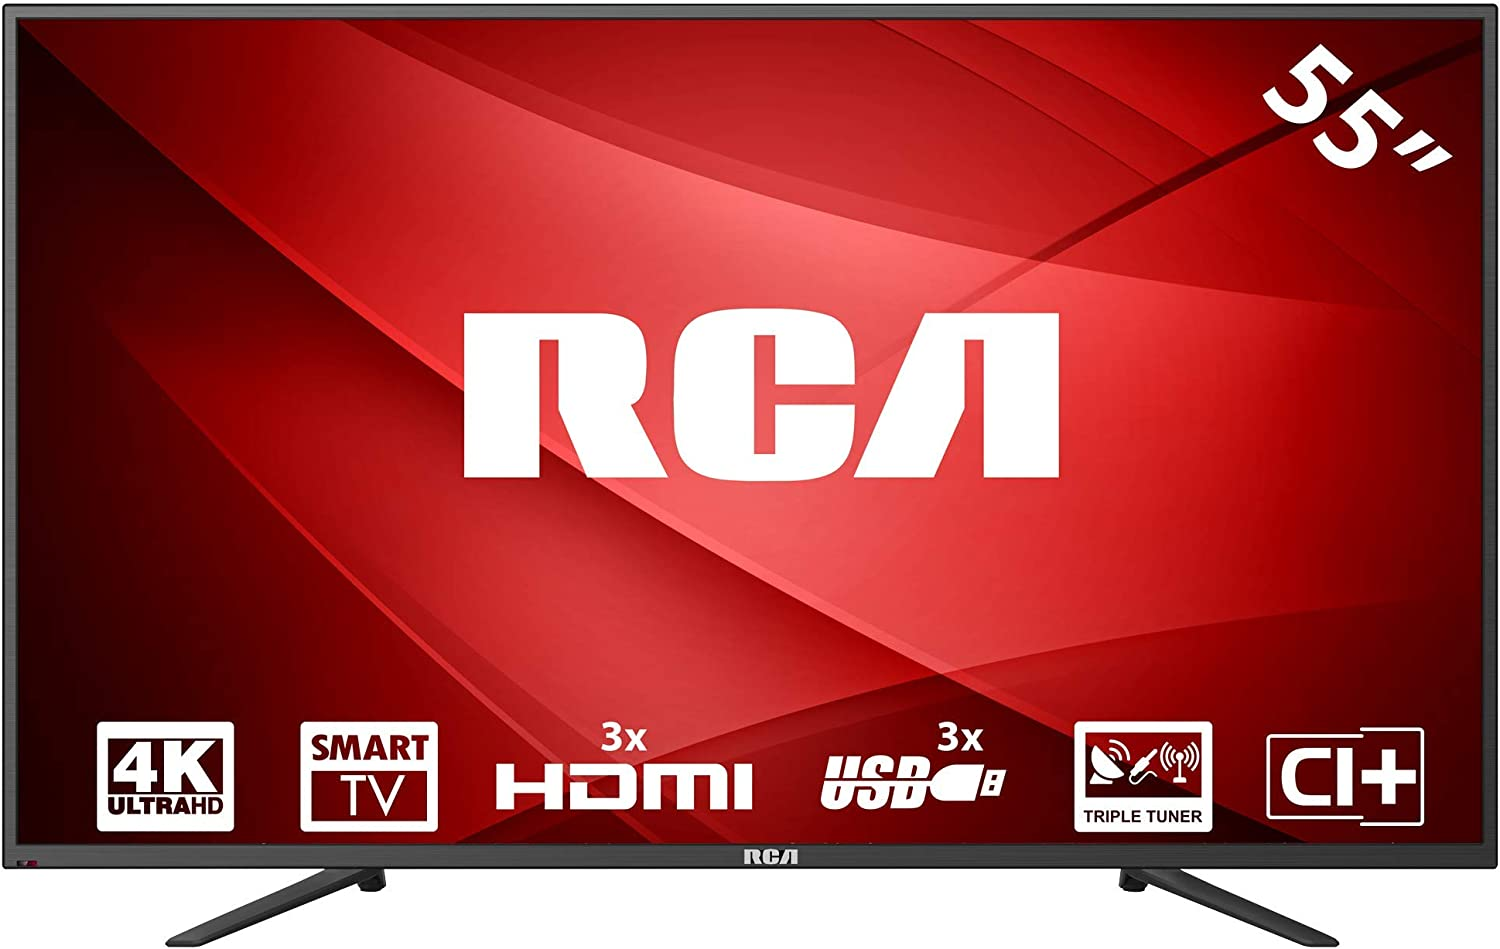 RCA RS55U1-EU 4K Smart LED TV (55 Pulgadas, Triple Tuner, HDMI, Ci+, Reproductor de Medios a través de USB 2.0, 60Hz): Amazon.es: Electrónica